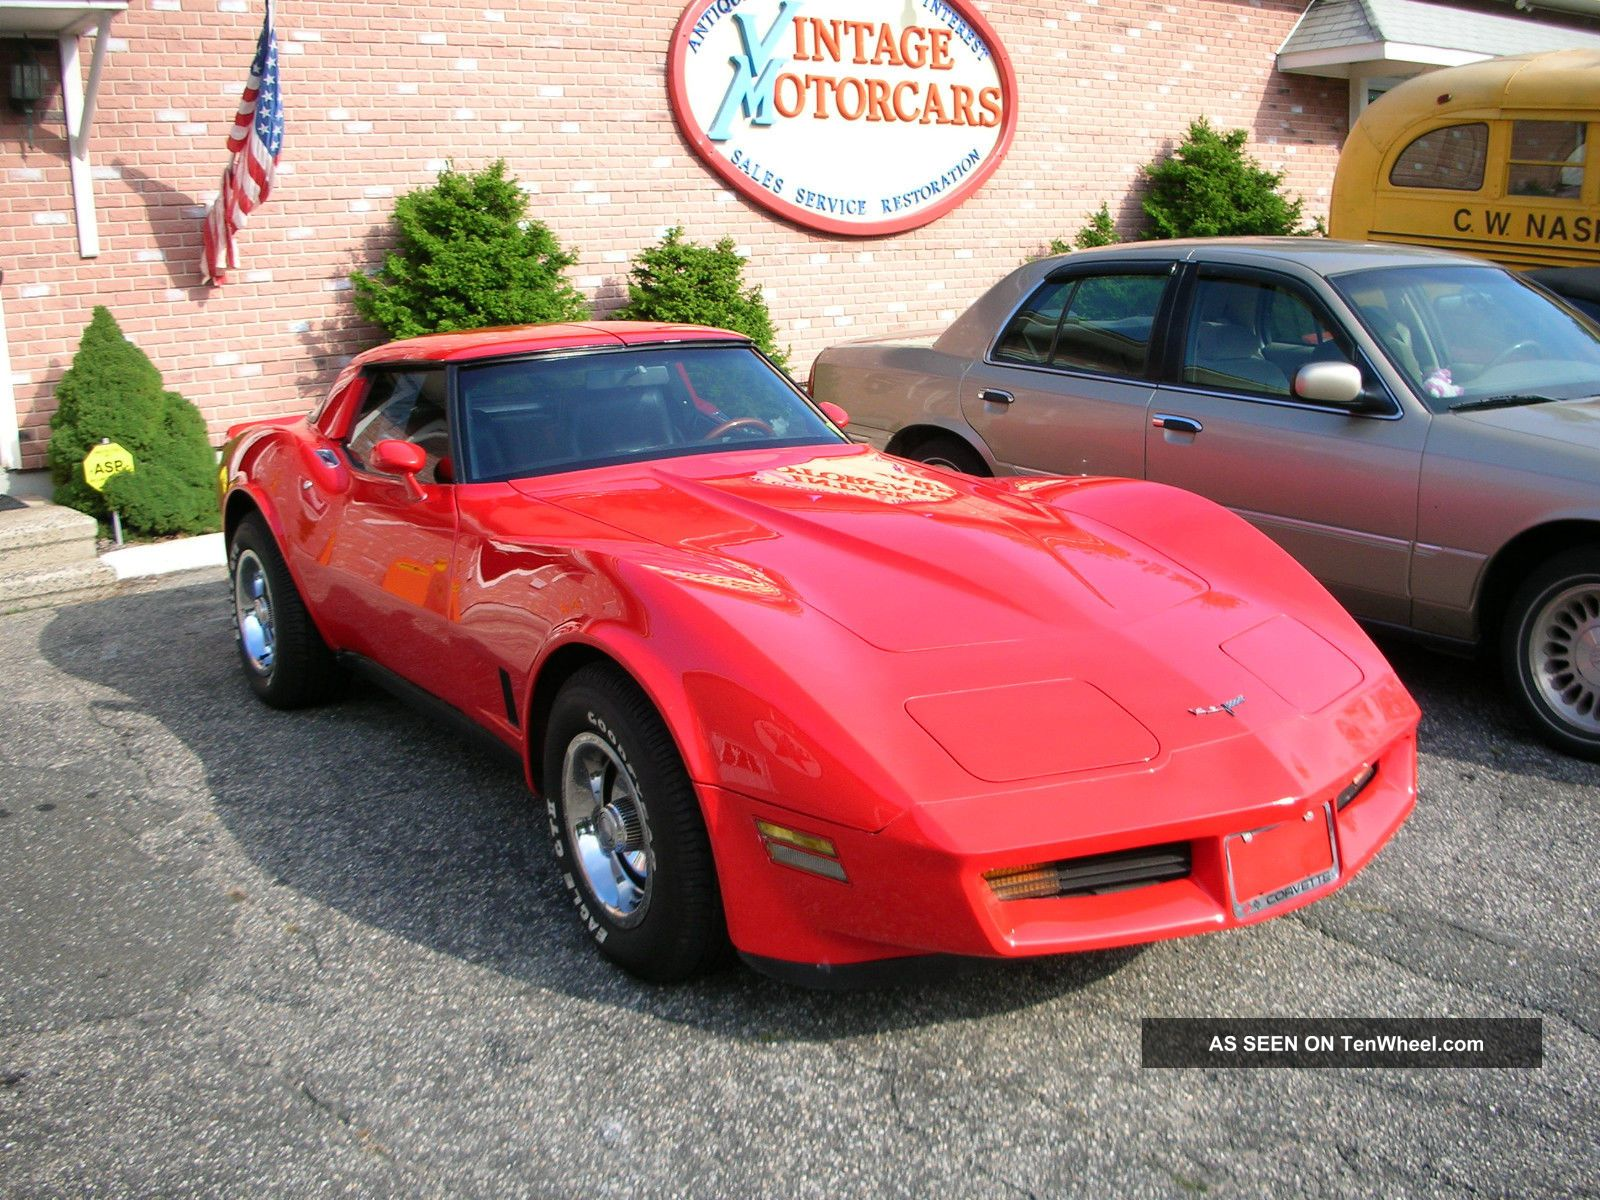 1981 Chevrolet Corvette Coupe Corvette photo